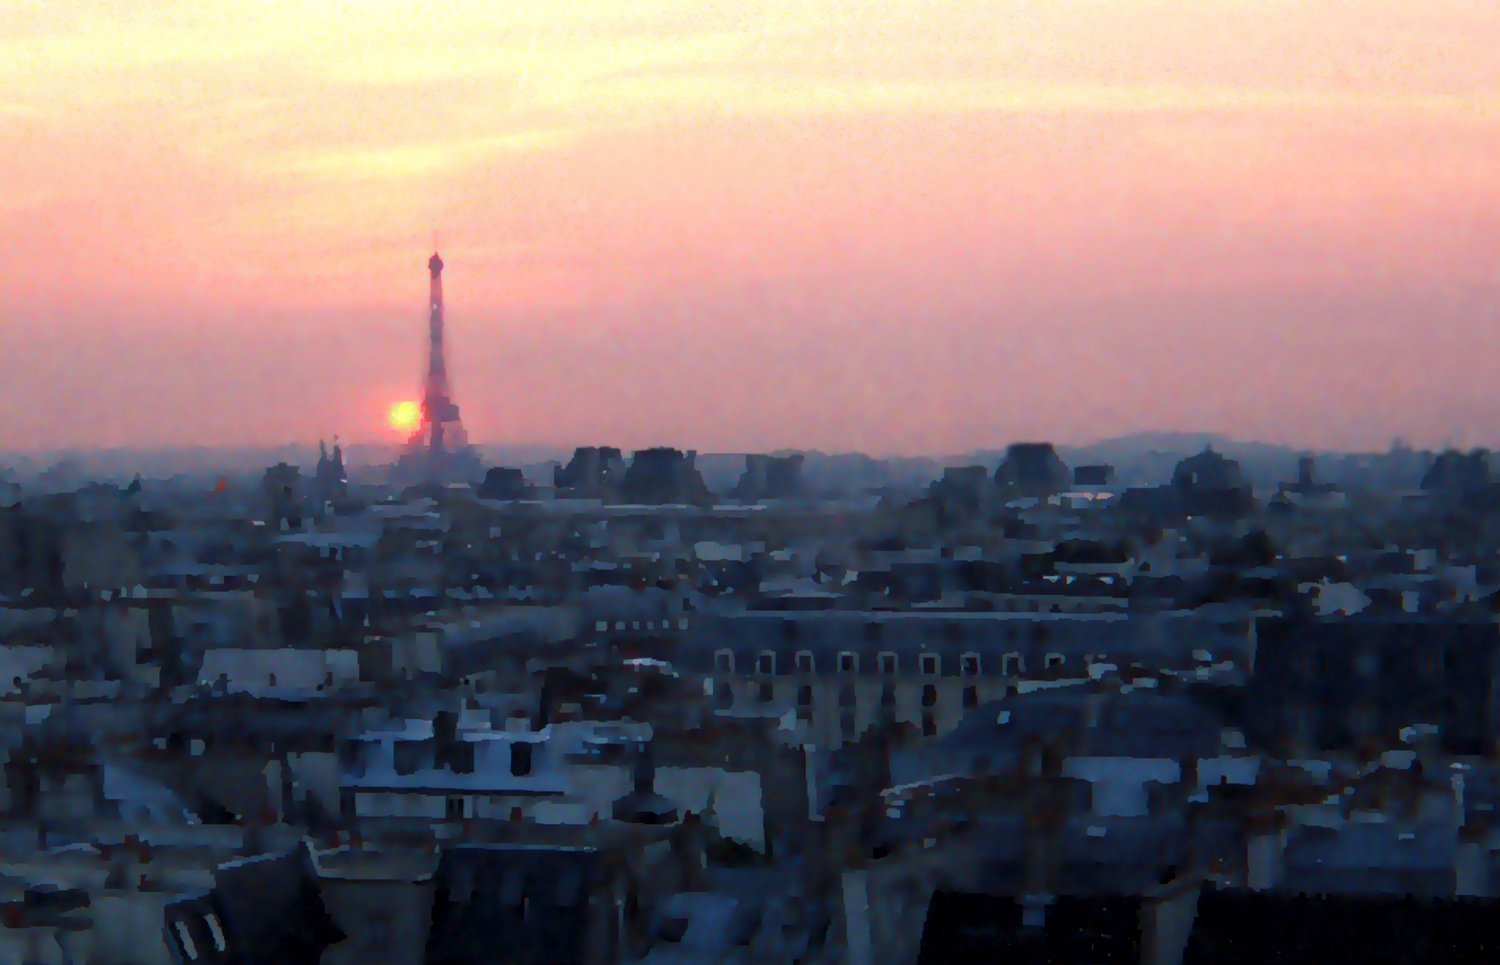 - Parisian sunset - Techno-Impressionist Museum - Techno-Impressionism - art - beautiful - photo photography picture - by Tony Karp